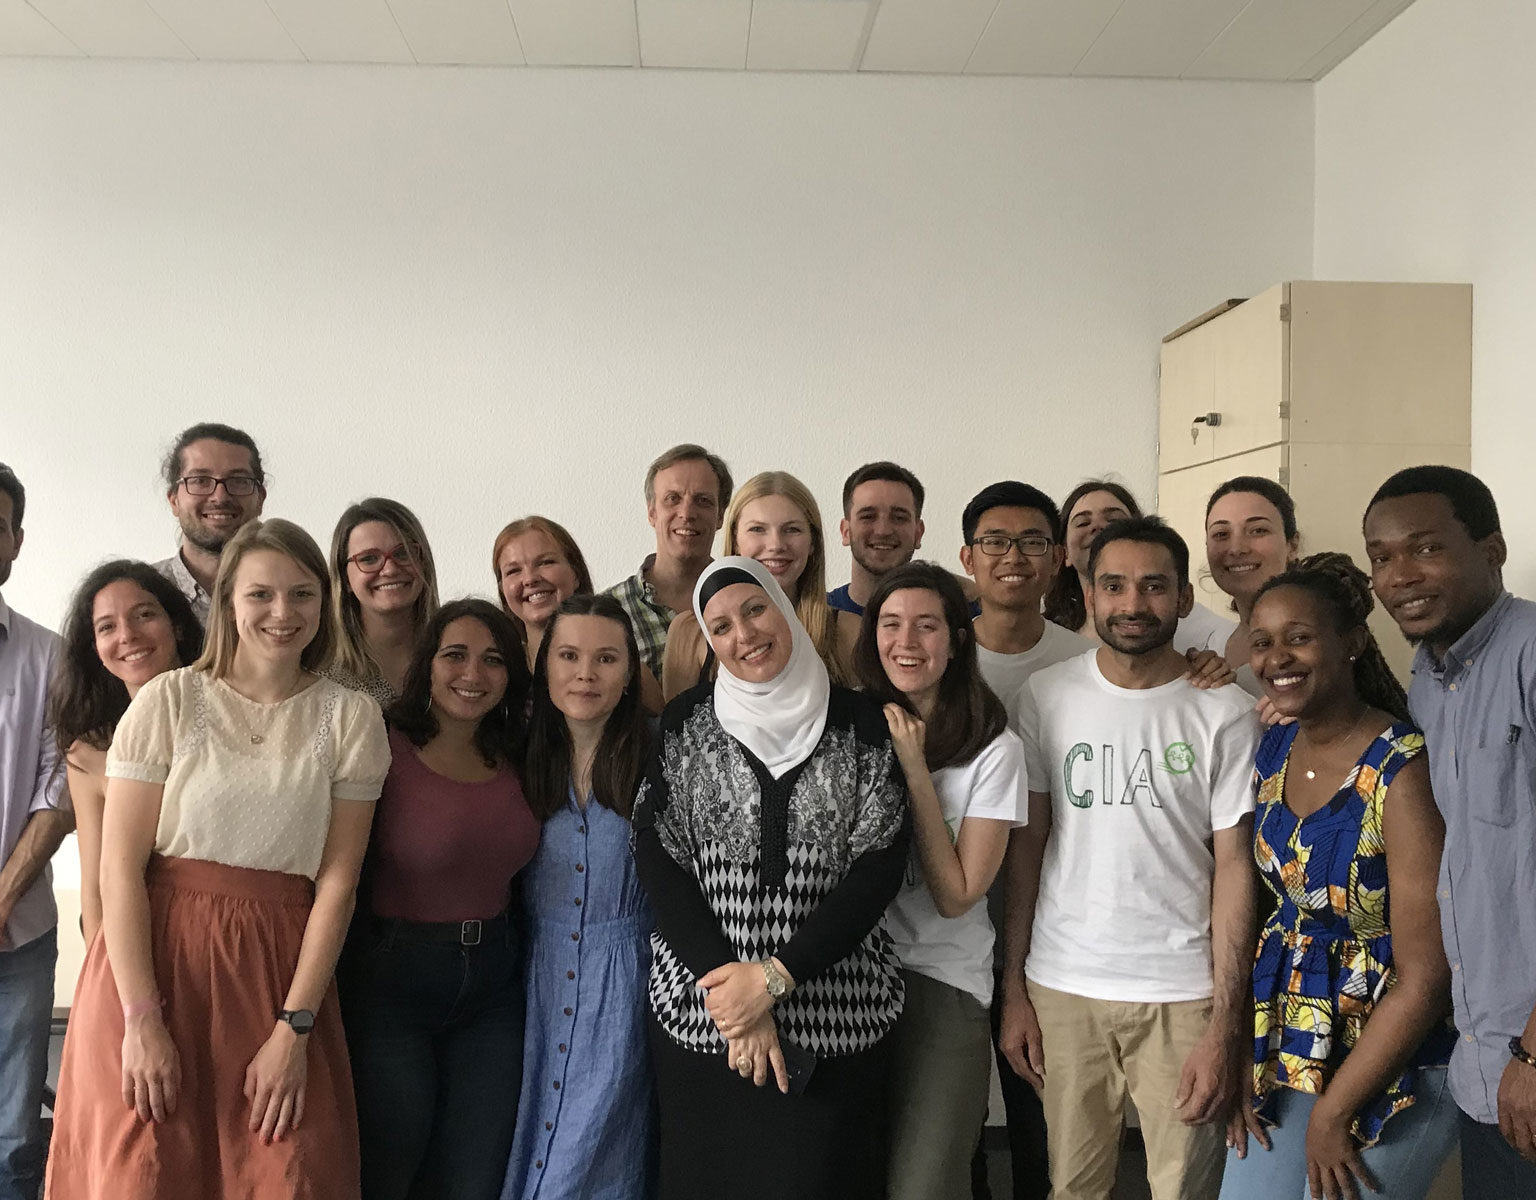 Group photo with the students of the Ruhr-University Bochum from the NOHA (Network on Humanitarian Action) Master